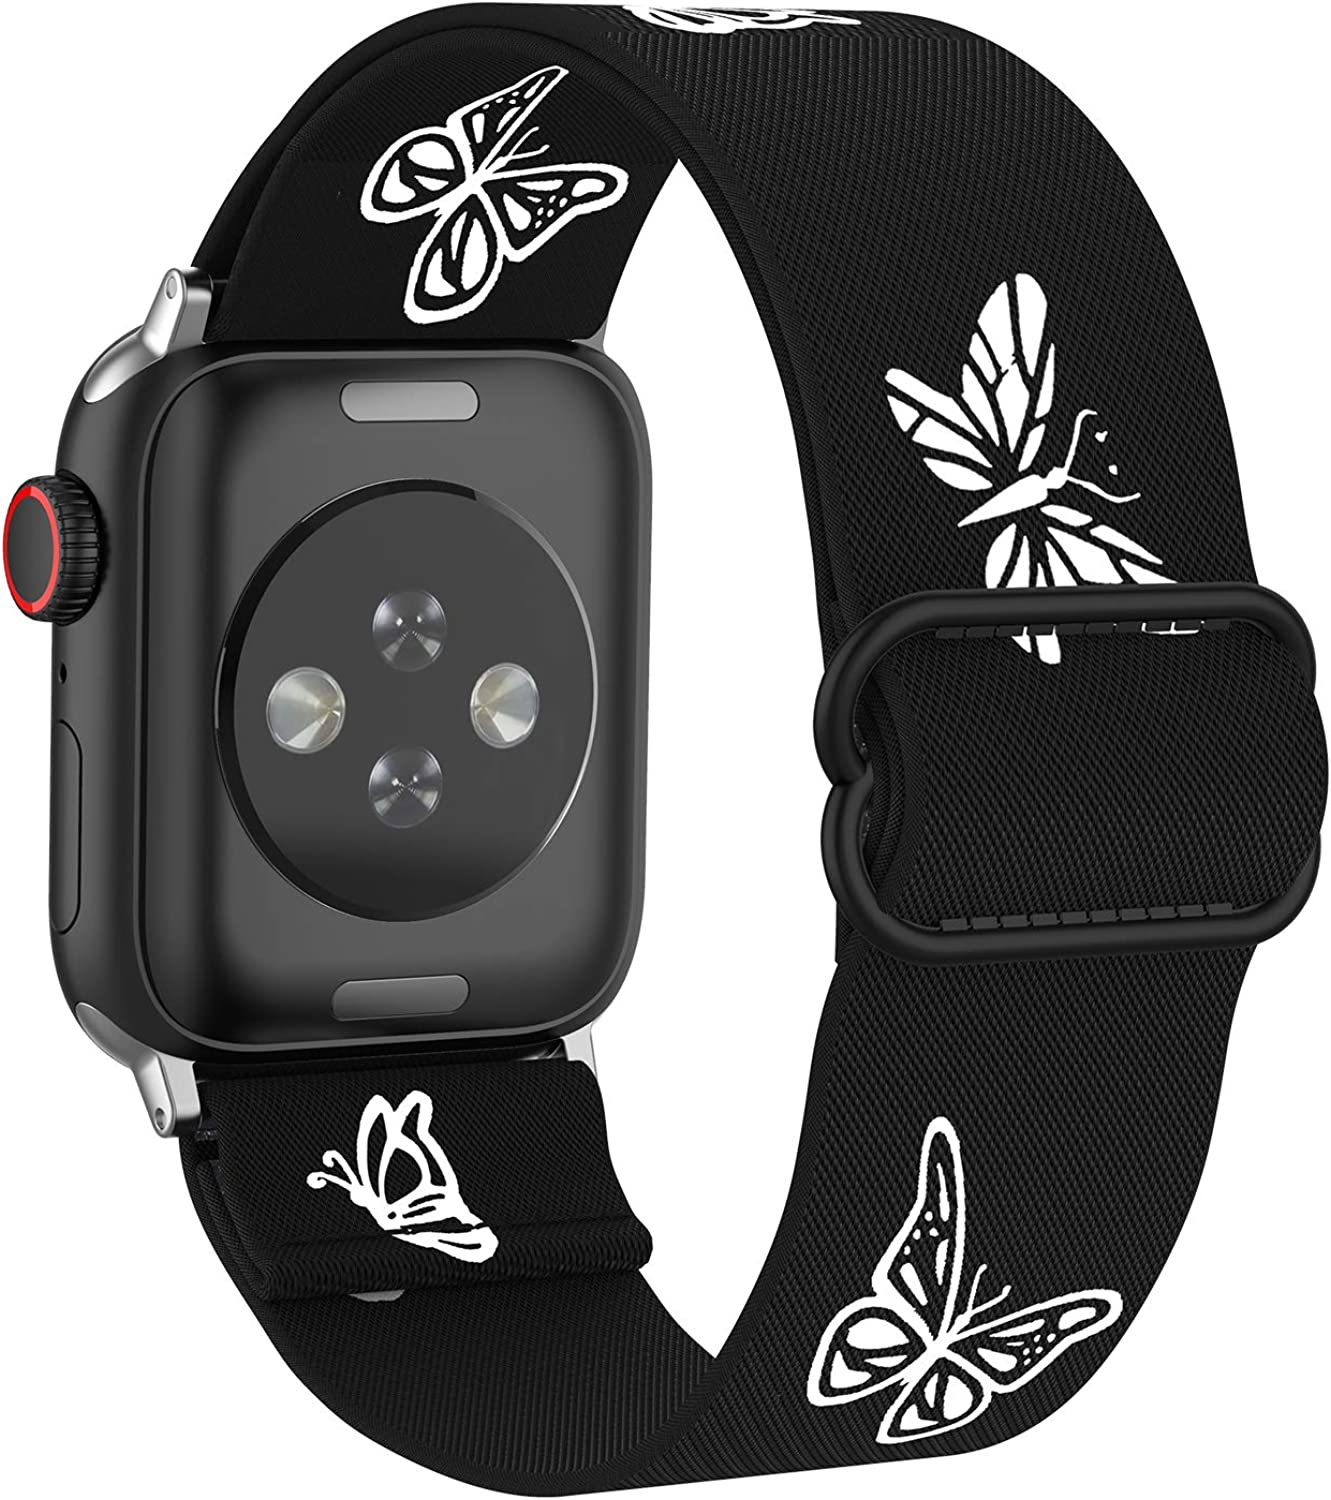 MITERV Stretchy Nylon Loop Bands Compatible with Apple Watch 38mm 40mm 42mm 44mm Adjustable Soft Elastics Strap Compatible with Apple Watch SE iWatch Series 6/5/4/3/2/1